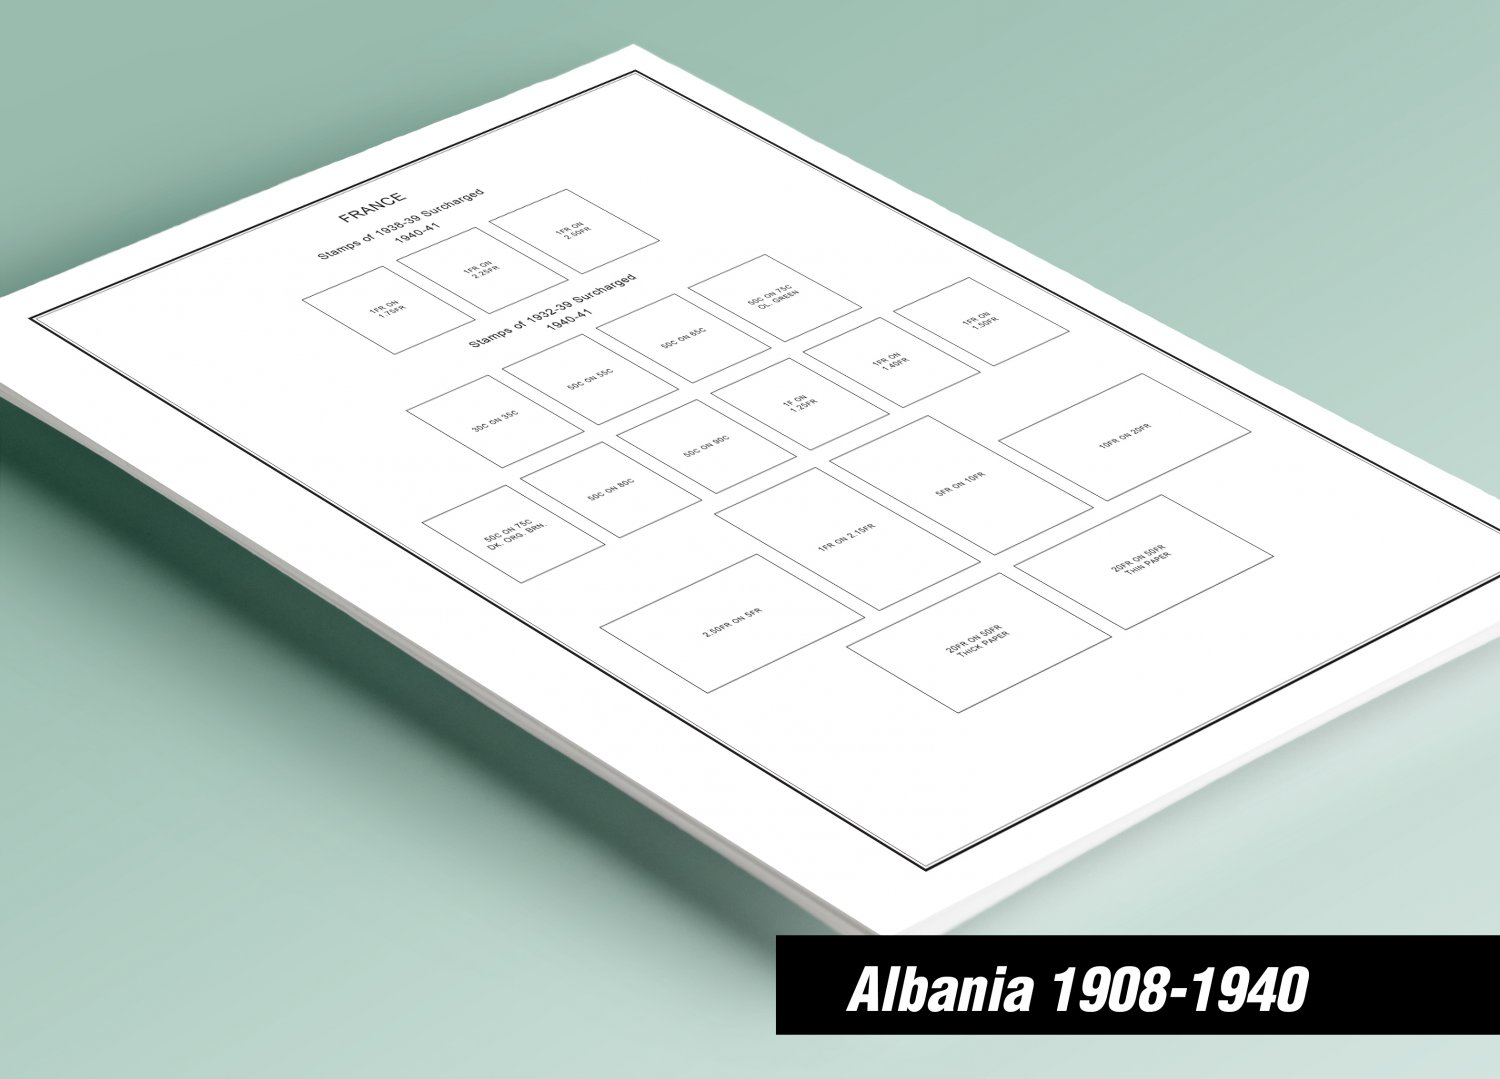 PRINTED ALBANIA [CLASS.] 1908-1940 STAMP ALBUM PAGES (36 pages)